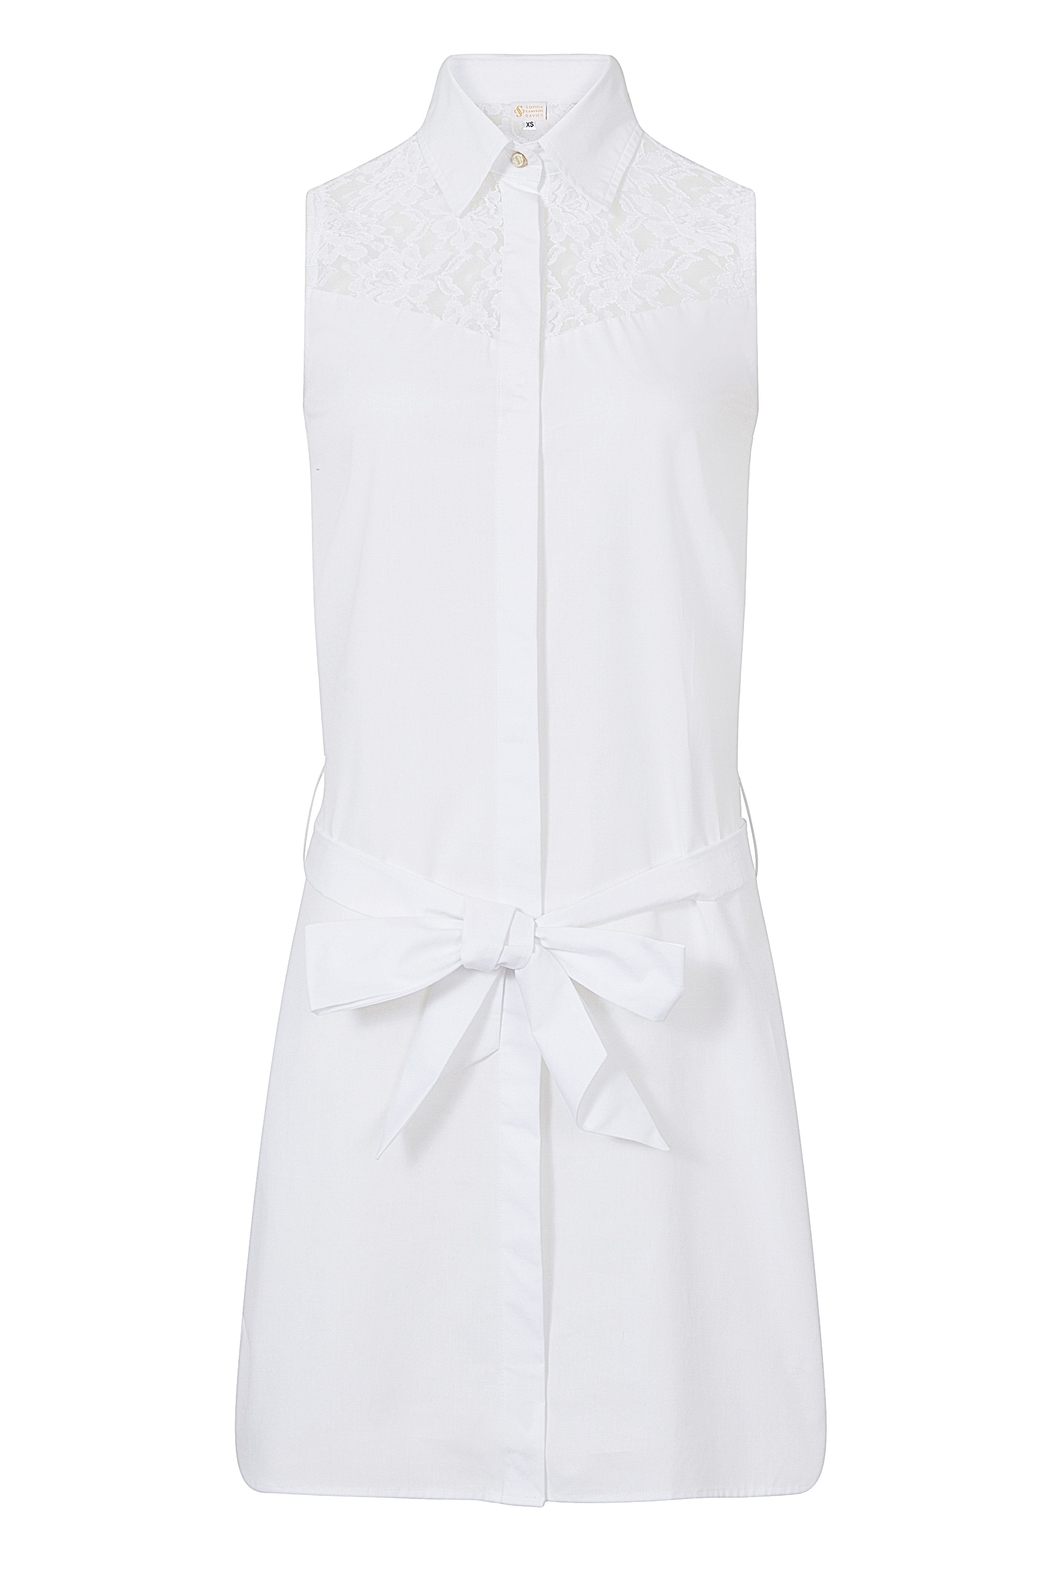 Sophie Cameron Davies Classic Shirt Dress - Front Full Image